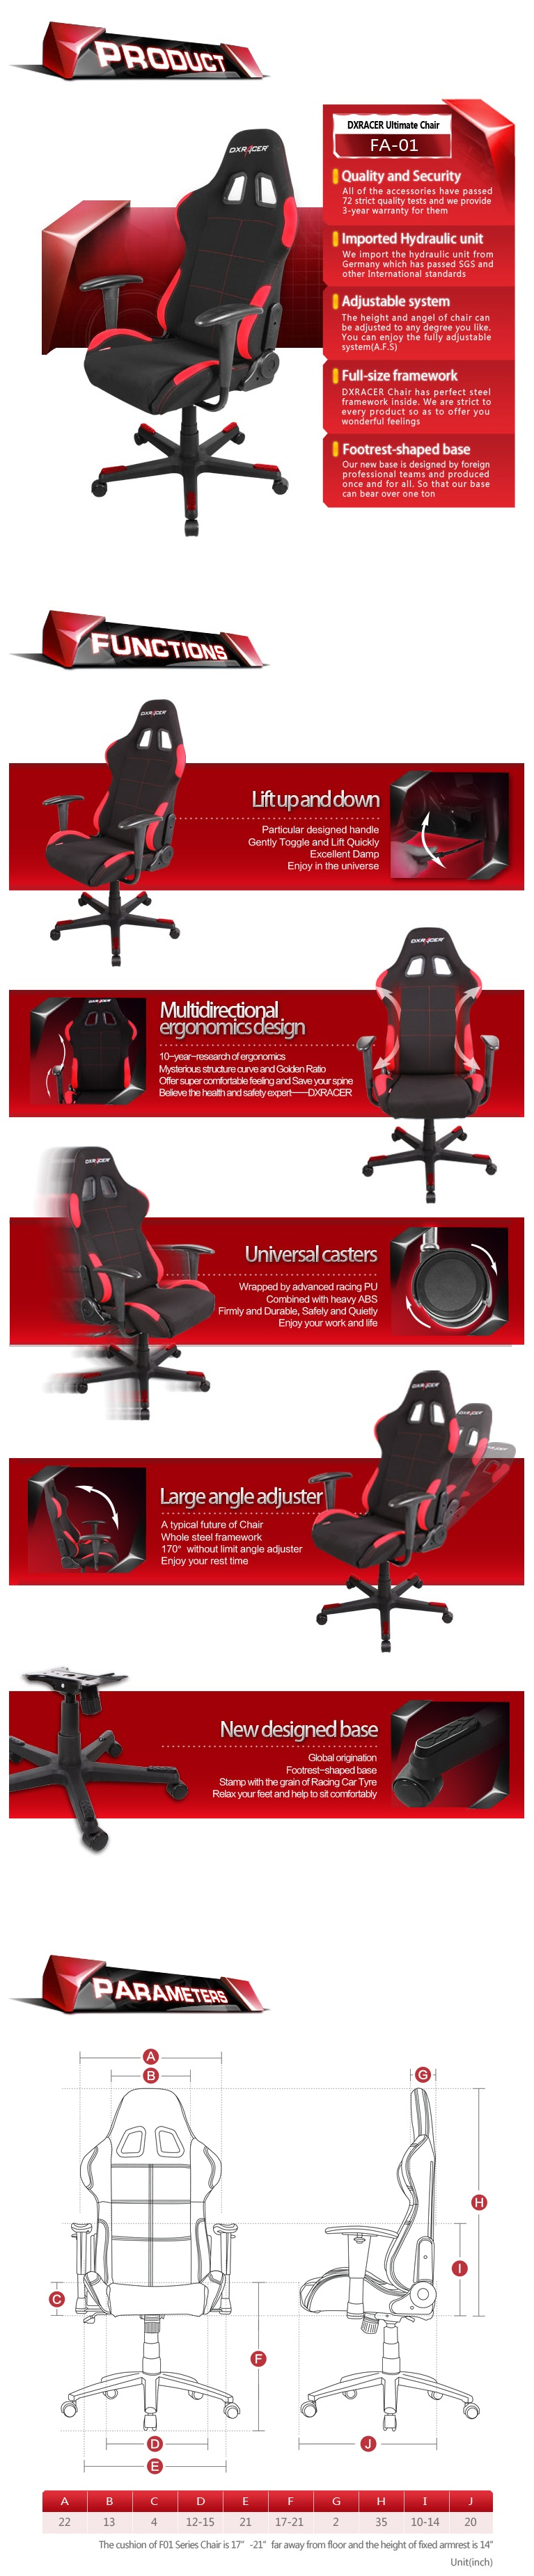 A large marketing image providing additional information about the product DXRacer F Series PC Gaming Chair - Black & Red - Additional alt info not provided